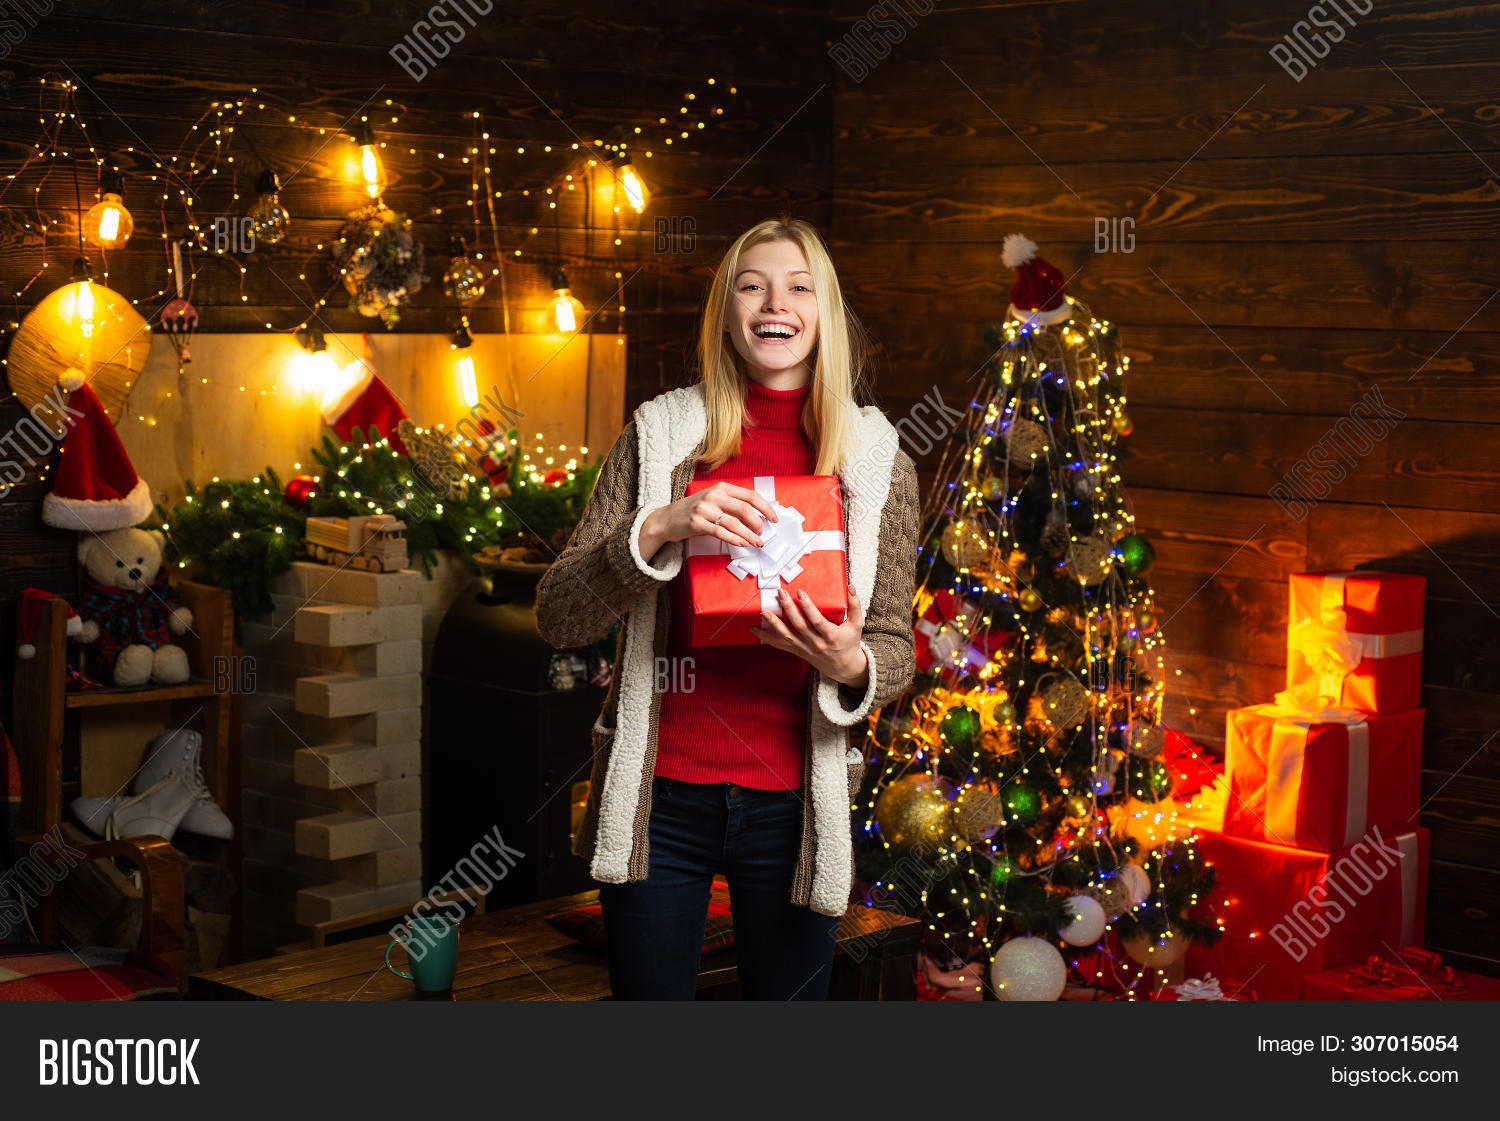 adorable,atmosphere,box,celebration,cheer,christmas,claus,comfort,coziness,cozy,cute,december,decorations,delivery,enjoy,eve,female,filled,garland,gift,girl,happiness,holidays,interior,joy,lights,love,moments,noel,pleasant,present,pretty,santa,shopping,tradition,tree,warm,winter,woman,wooden,xmas